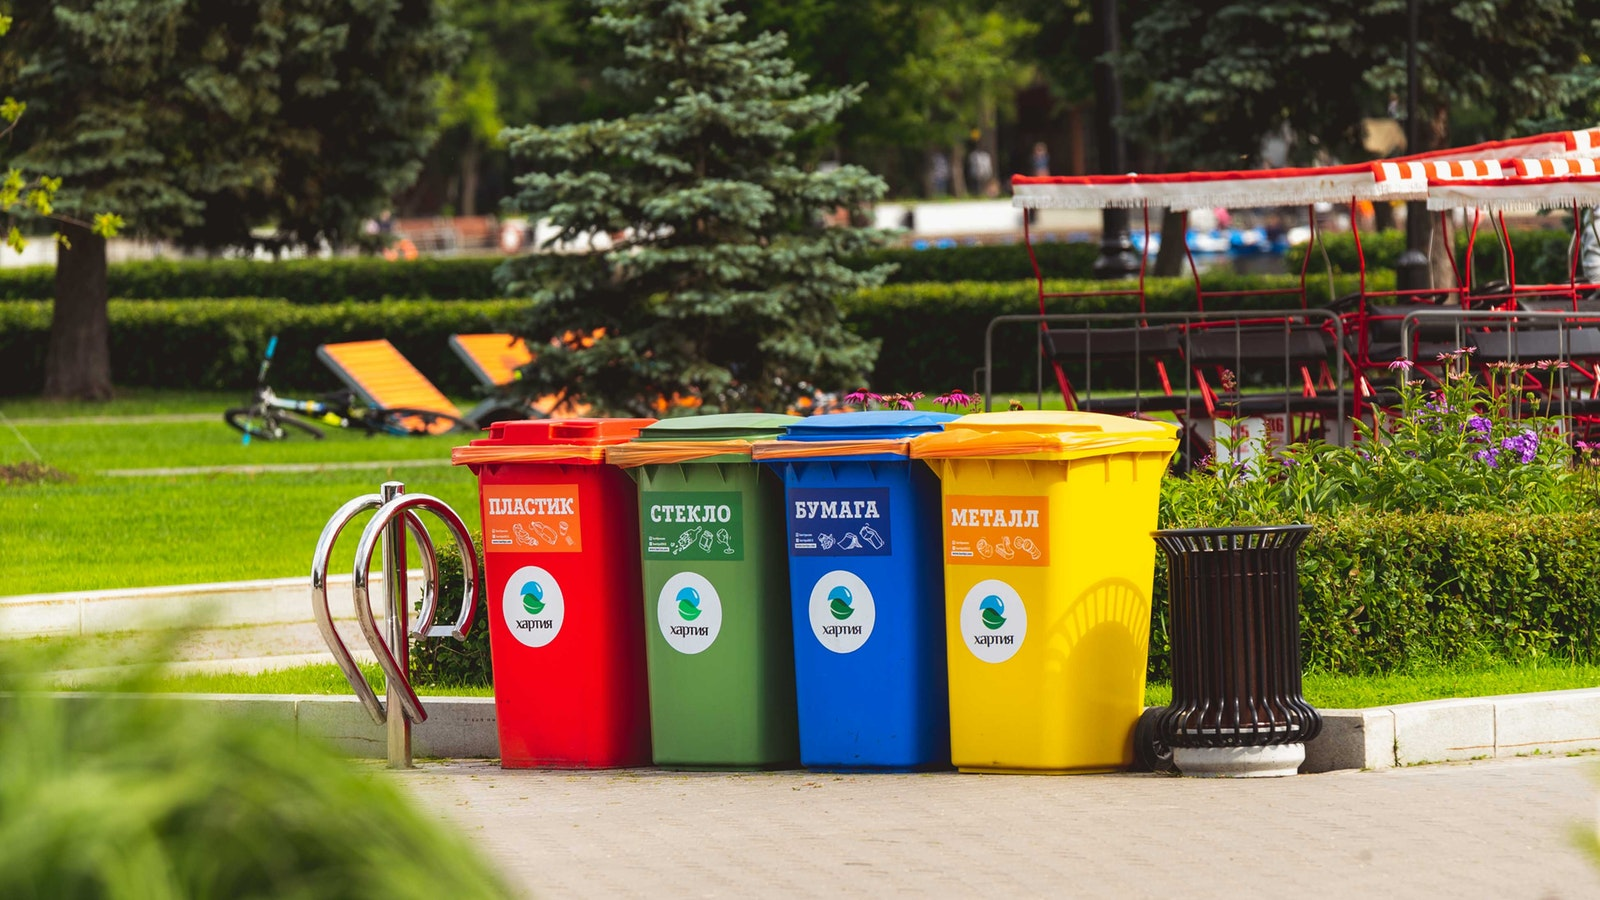 bins-container-disposal-2682683